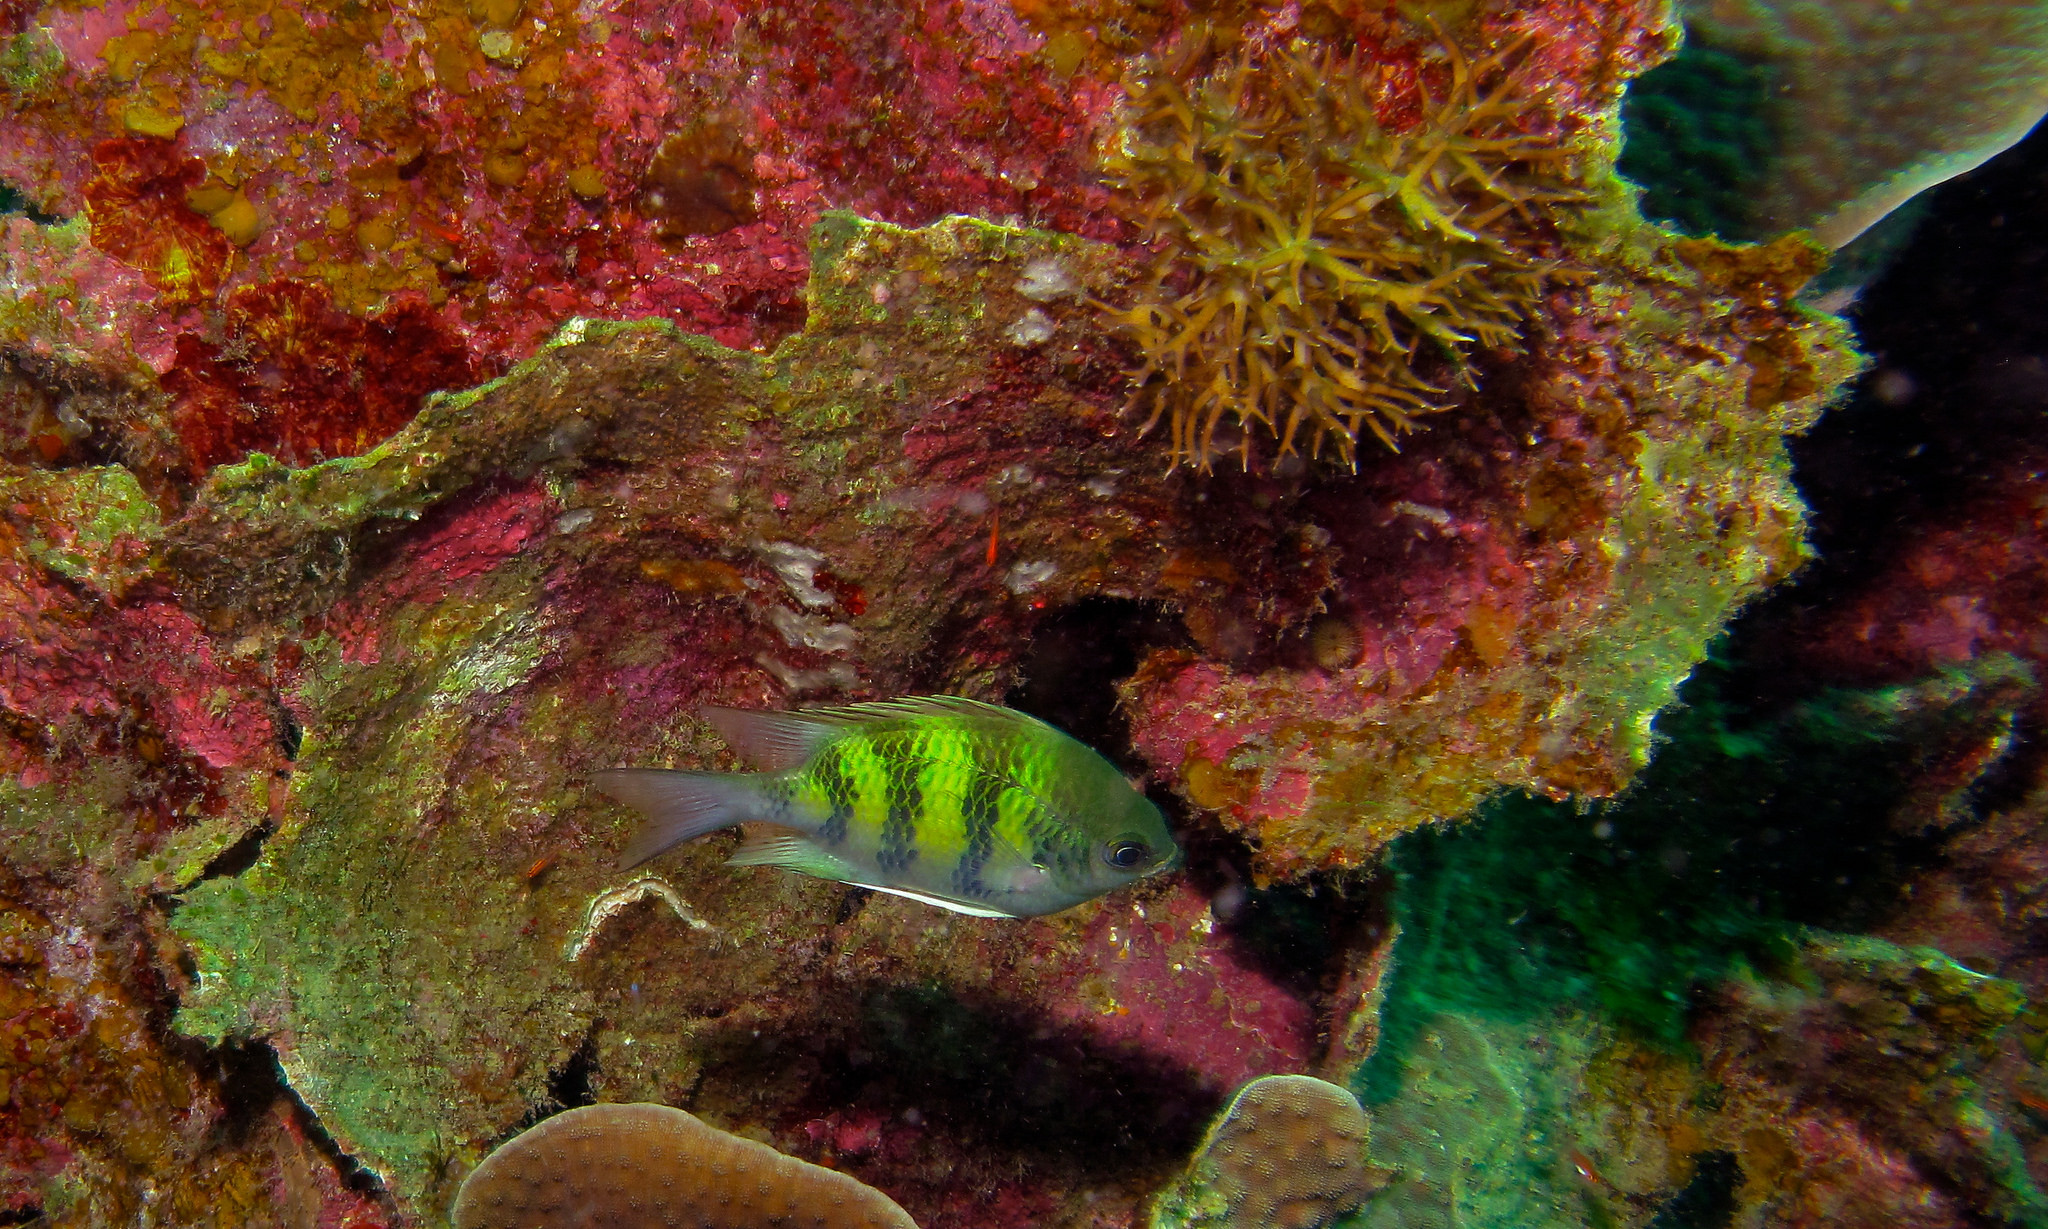 A Staghorn Damselfish spotted at the Sibuan Island